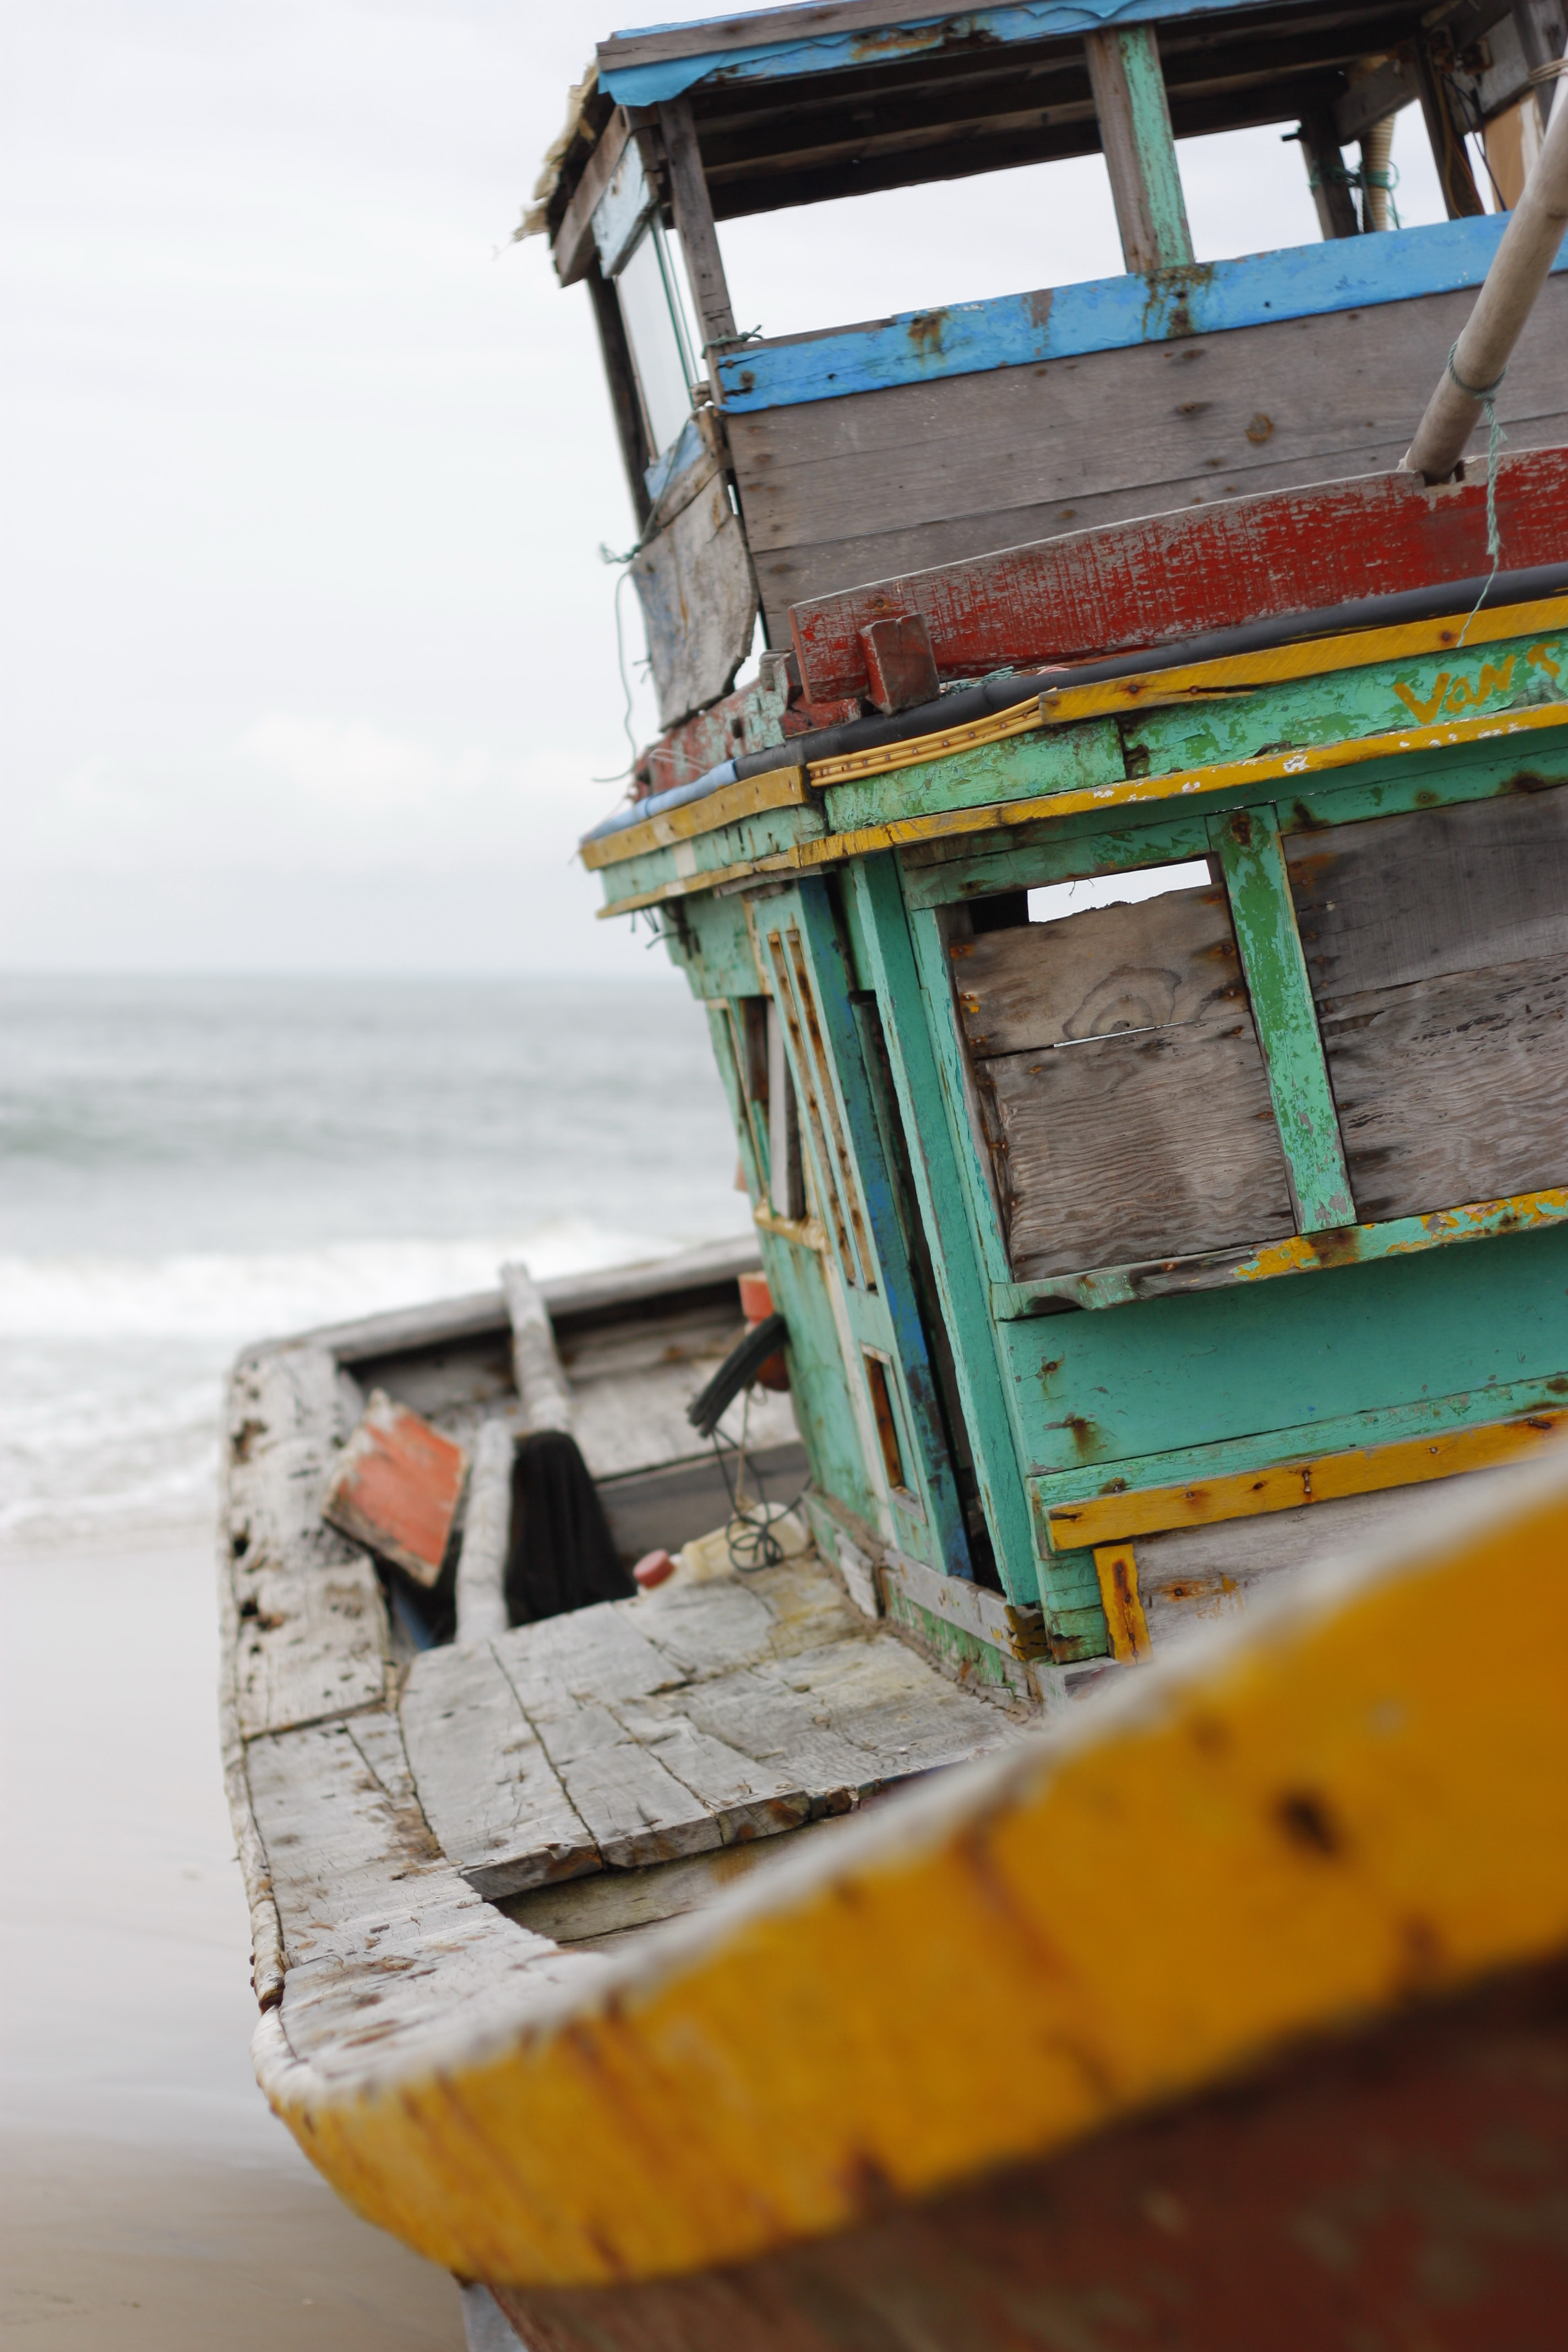 An old wooden boat painted in various colors on a sandy beach